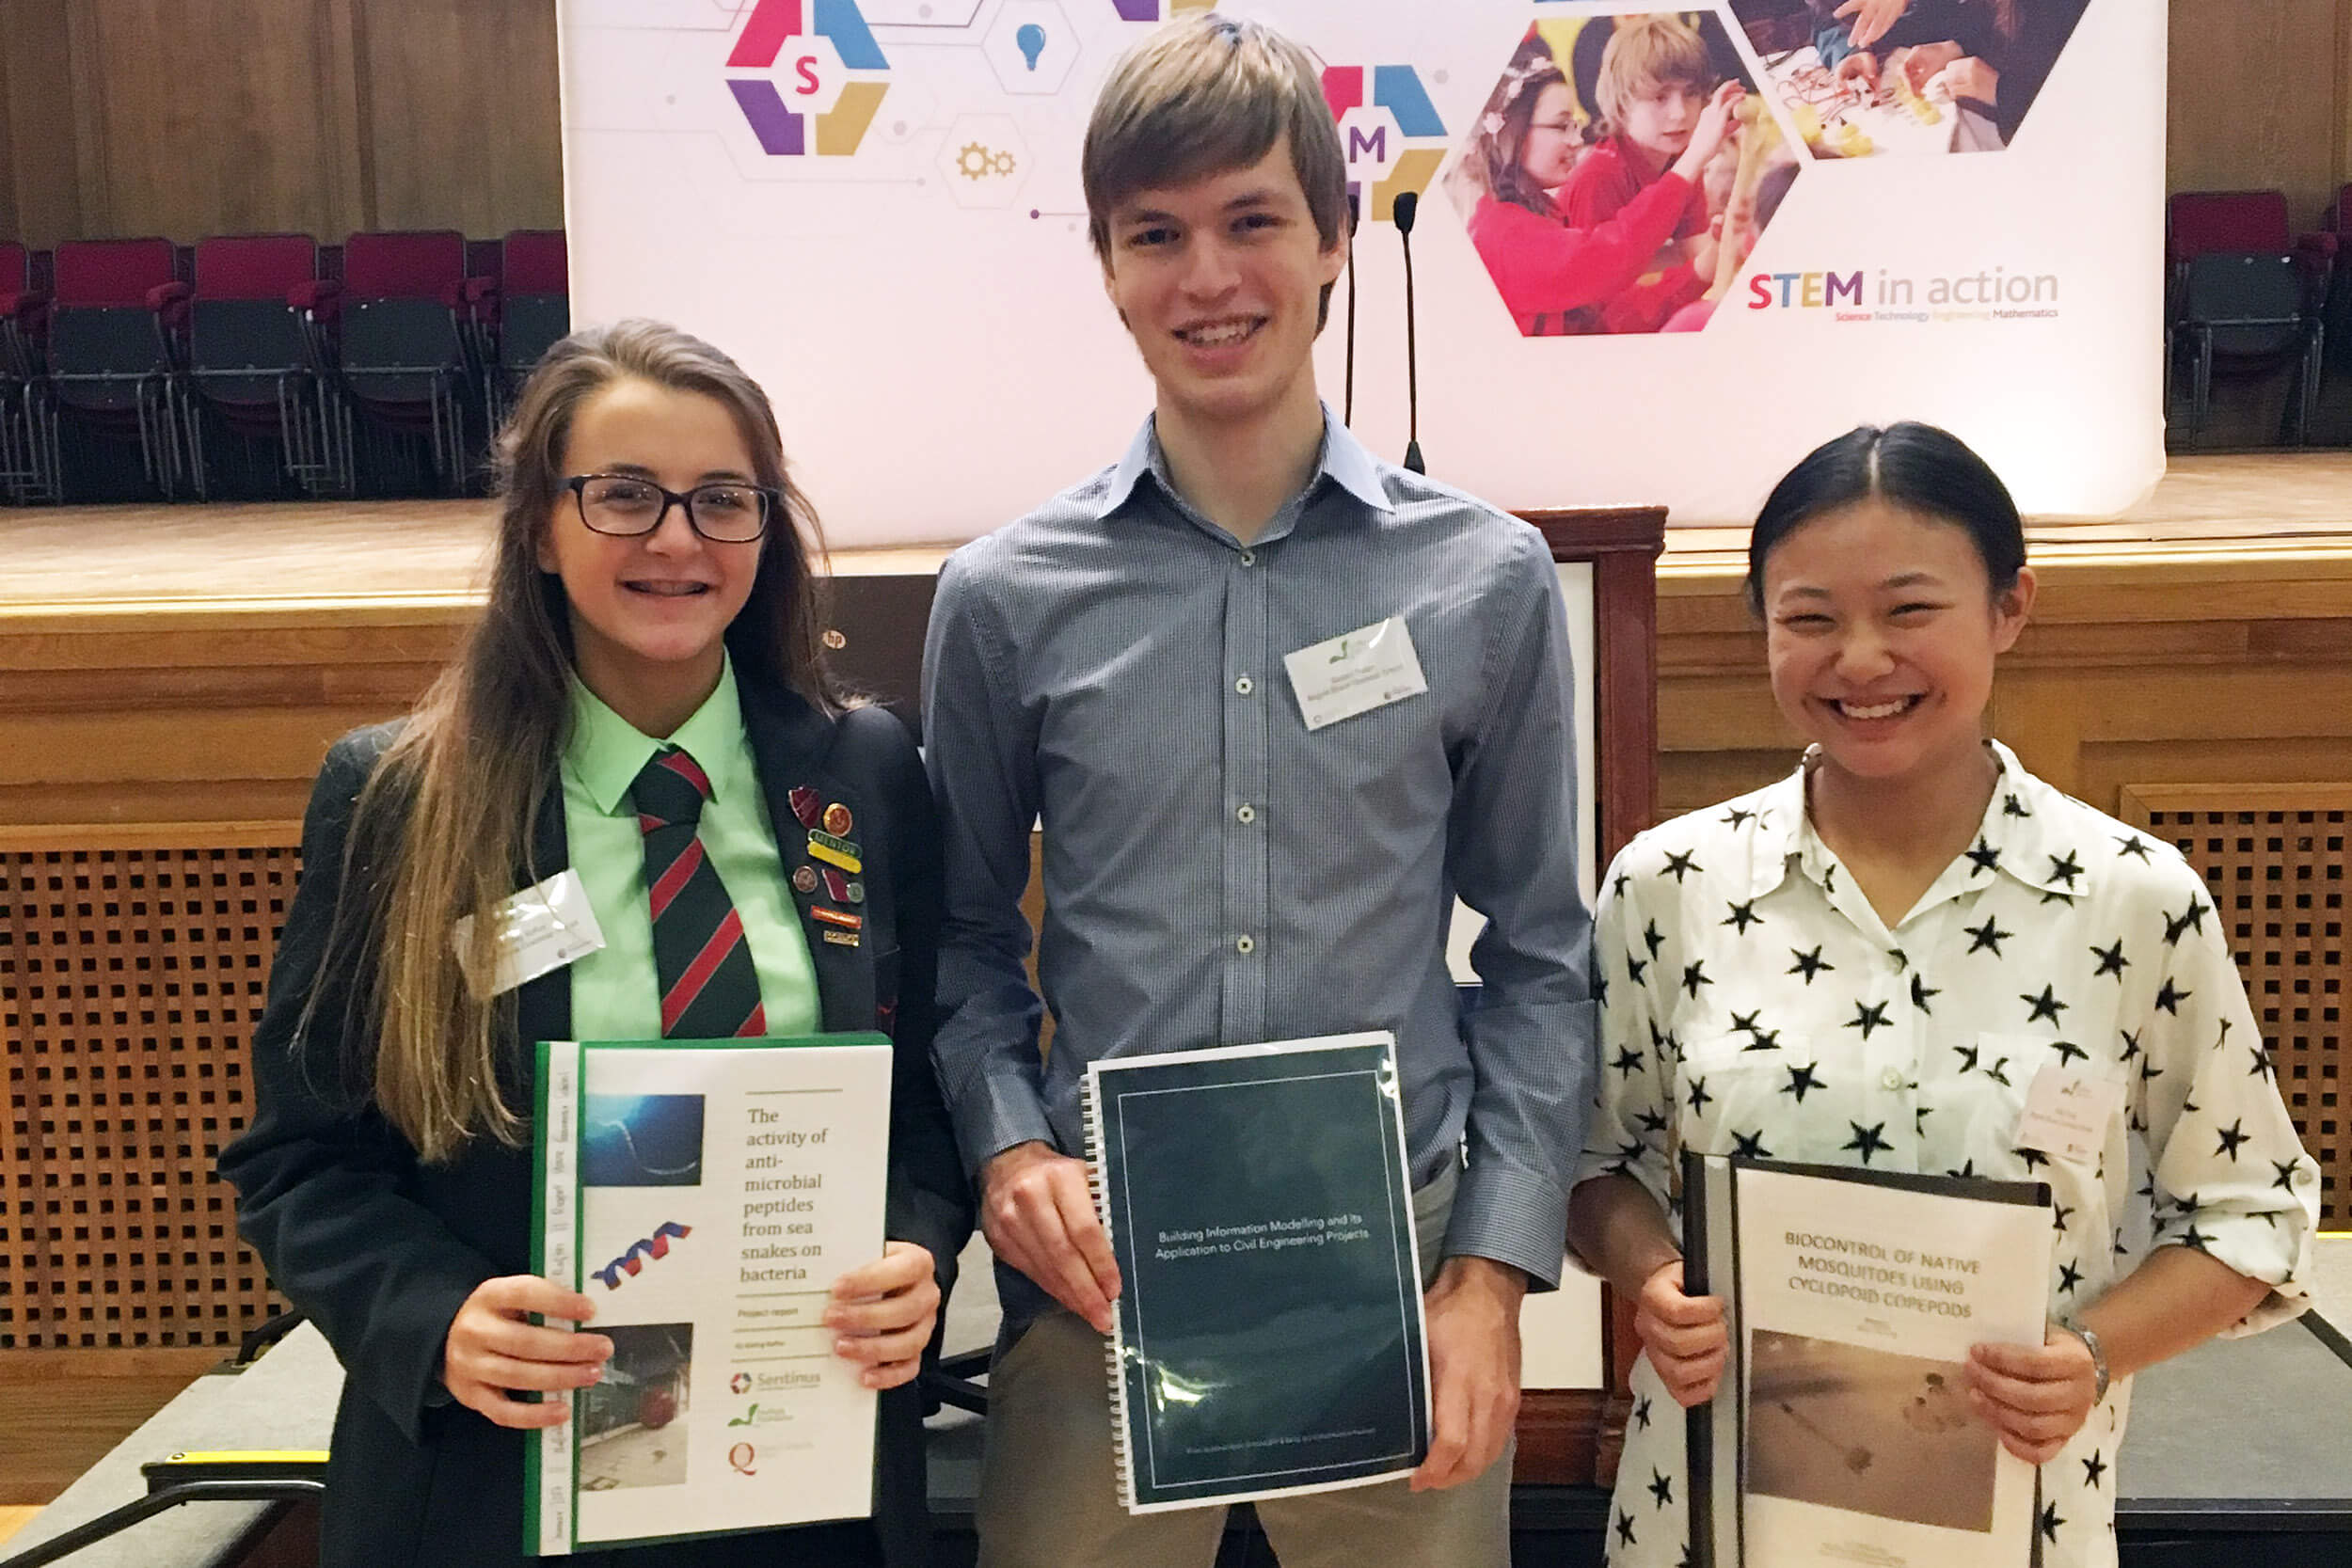 Students on a Nuffield Foundation Placement